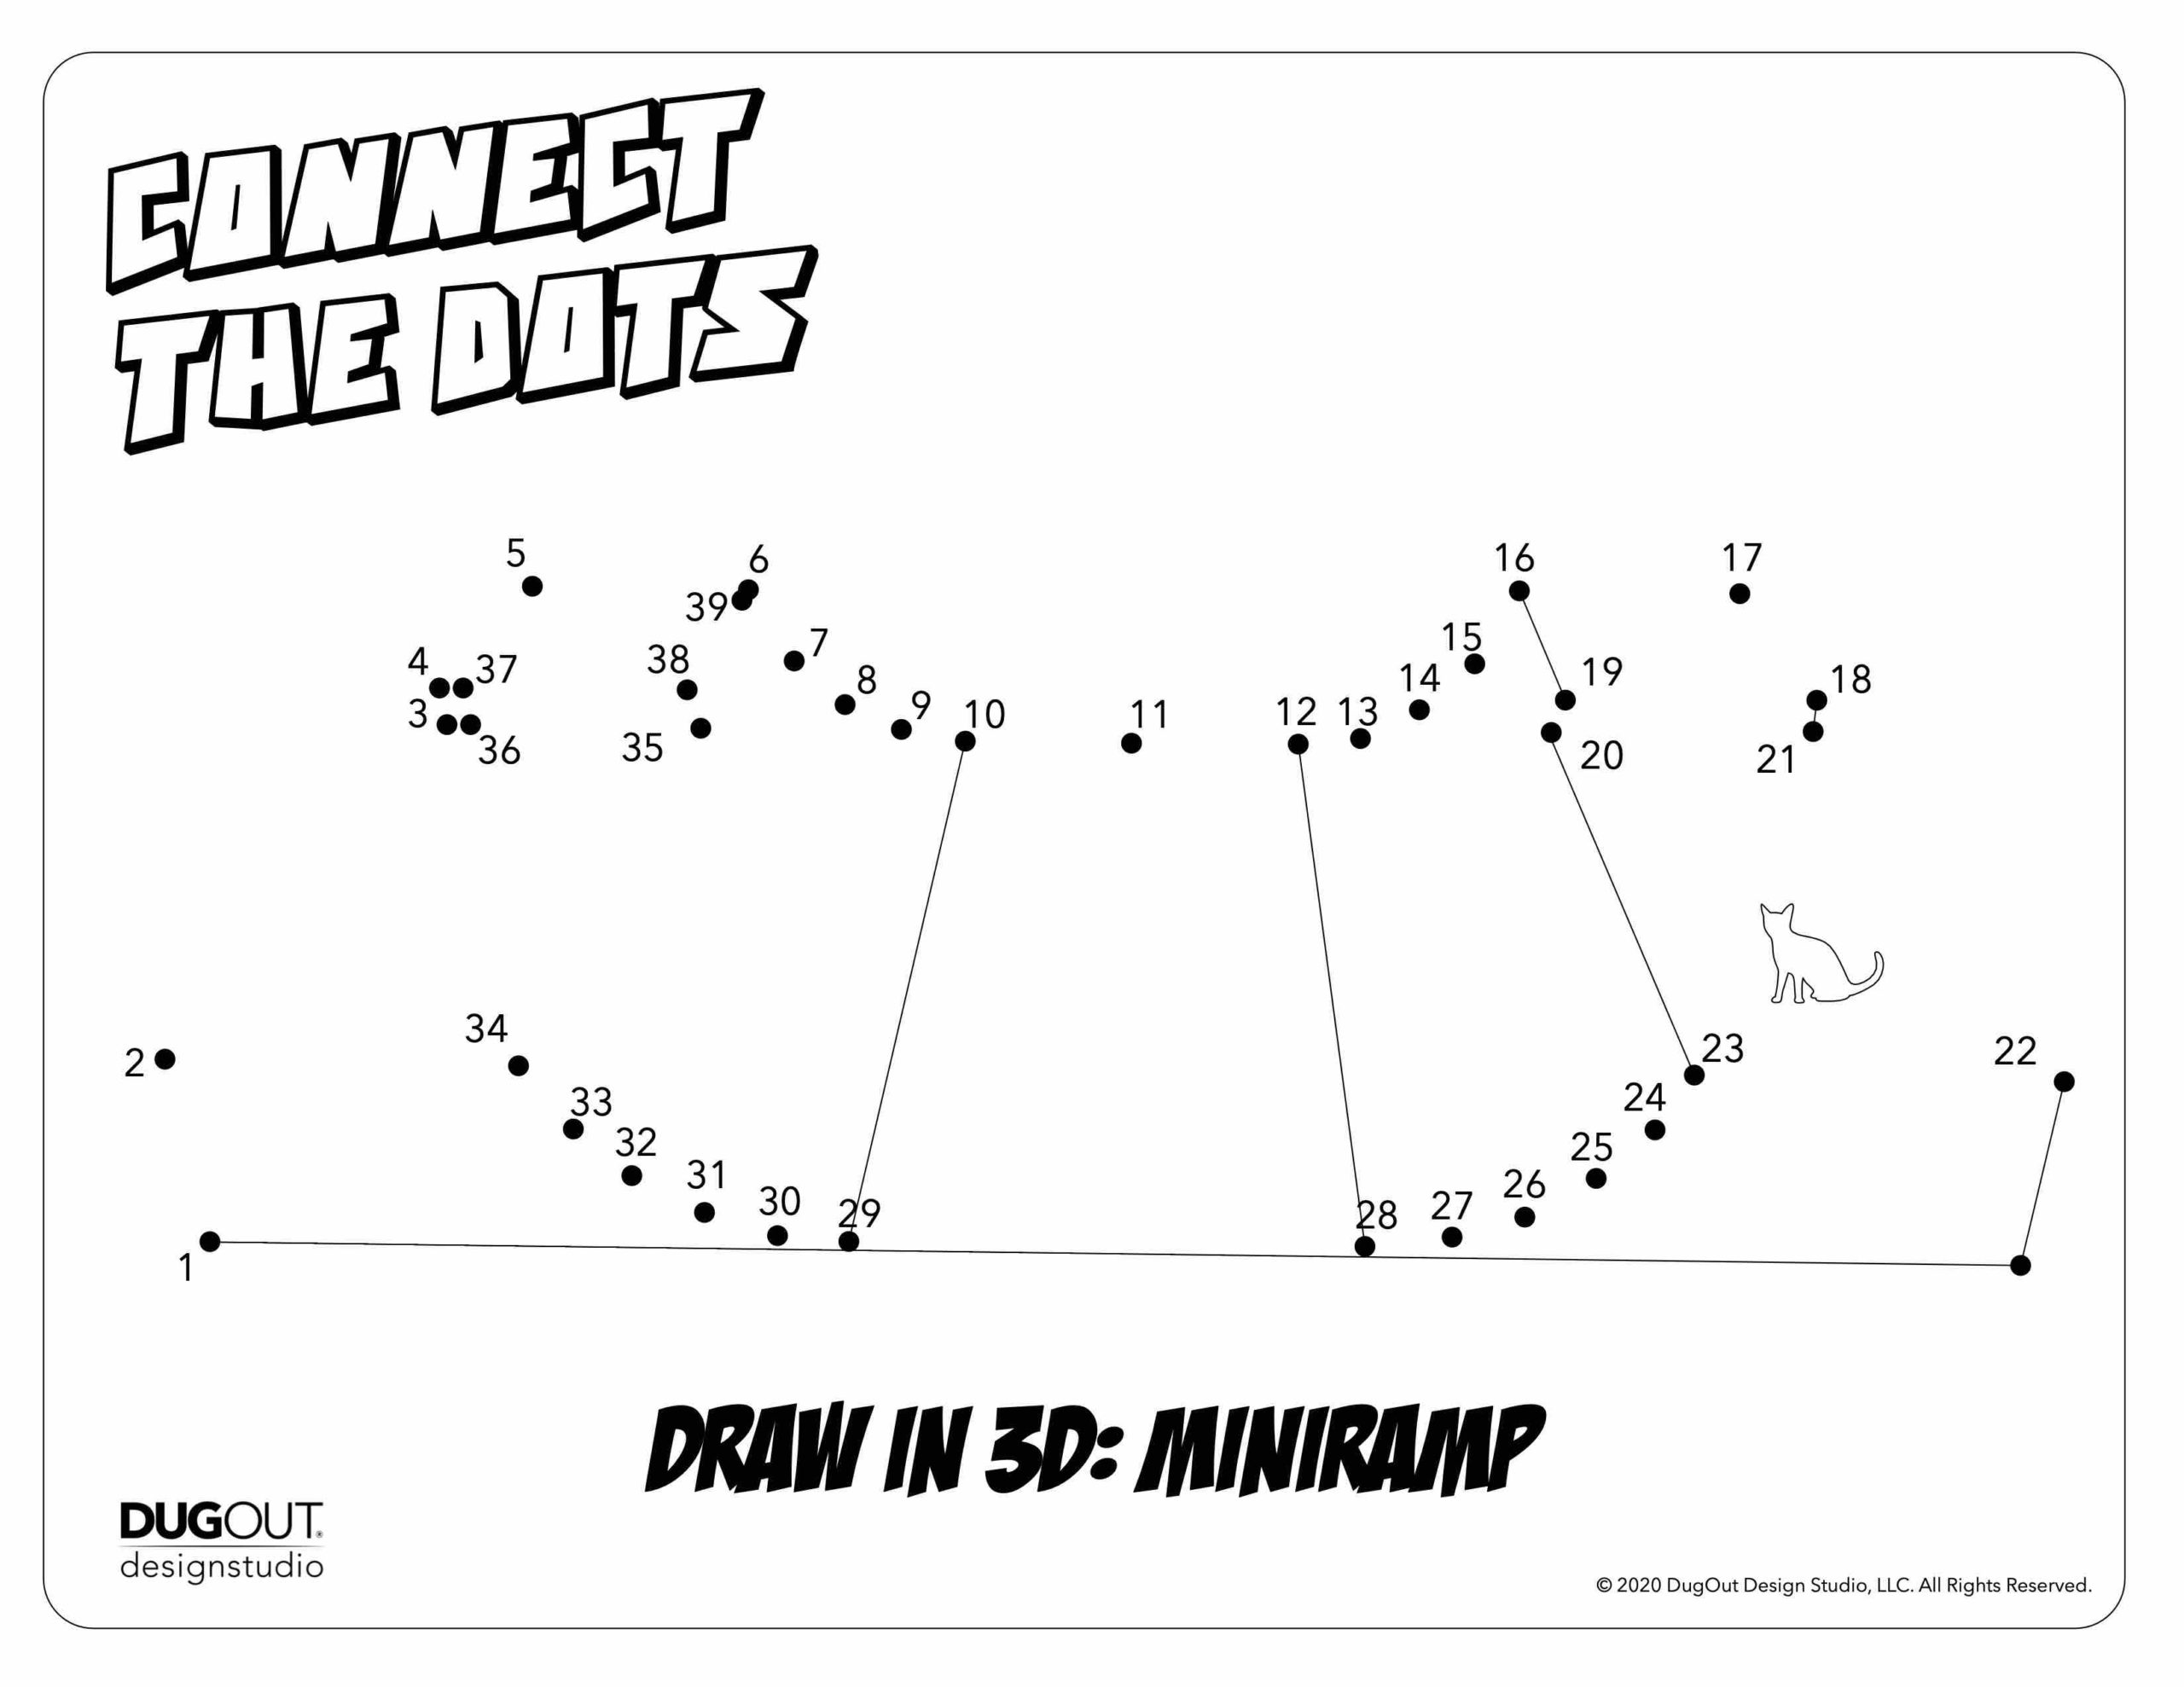 Connect the Dots: Learn to draw a 3D Mini-Ramp